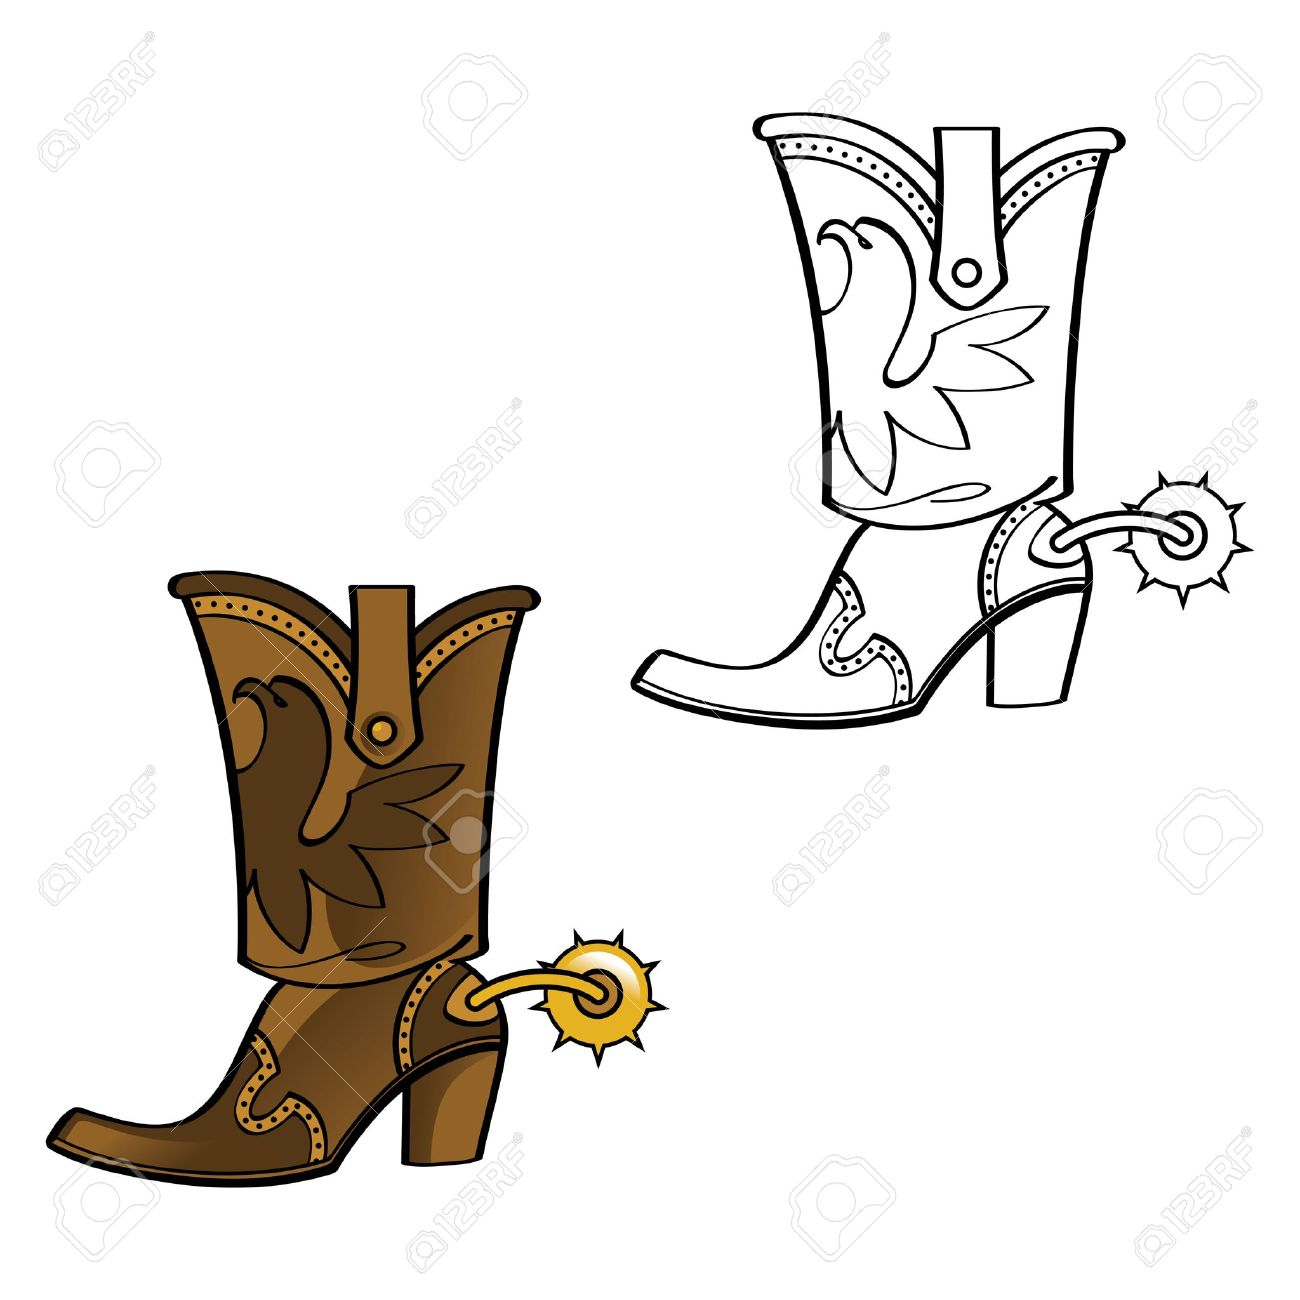 Boots fashion pic boots clip art - Cowboy Boot Shoe Leather West Western Spur Foot Wear Fashion Stock Vector 11916199